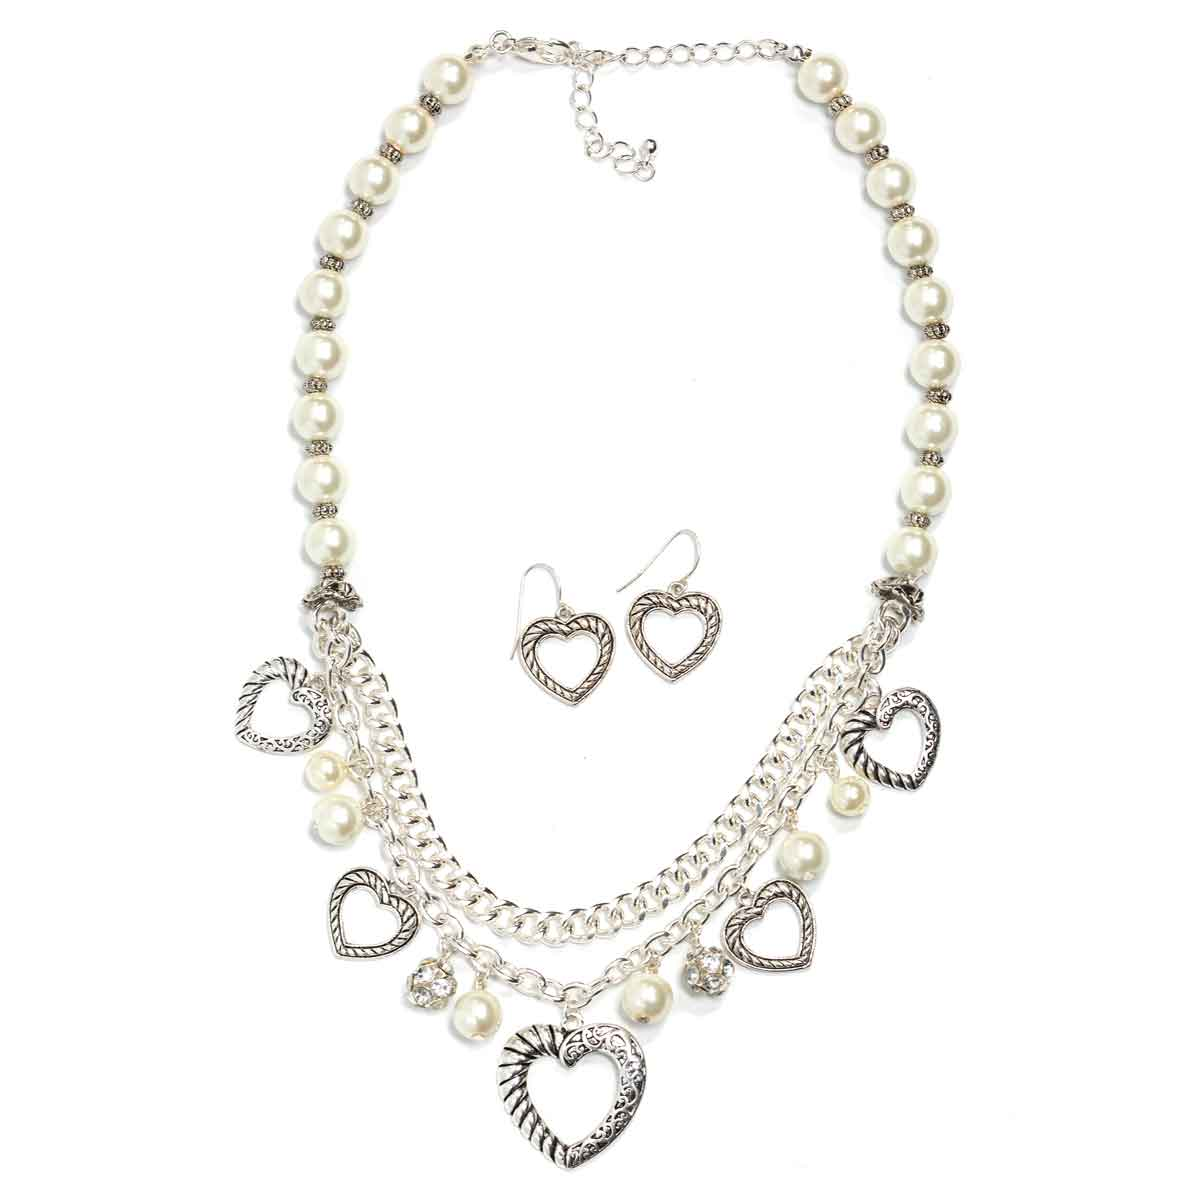 Fashion Necklace & Earring Sets - 1136 - Silver